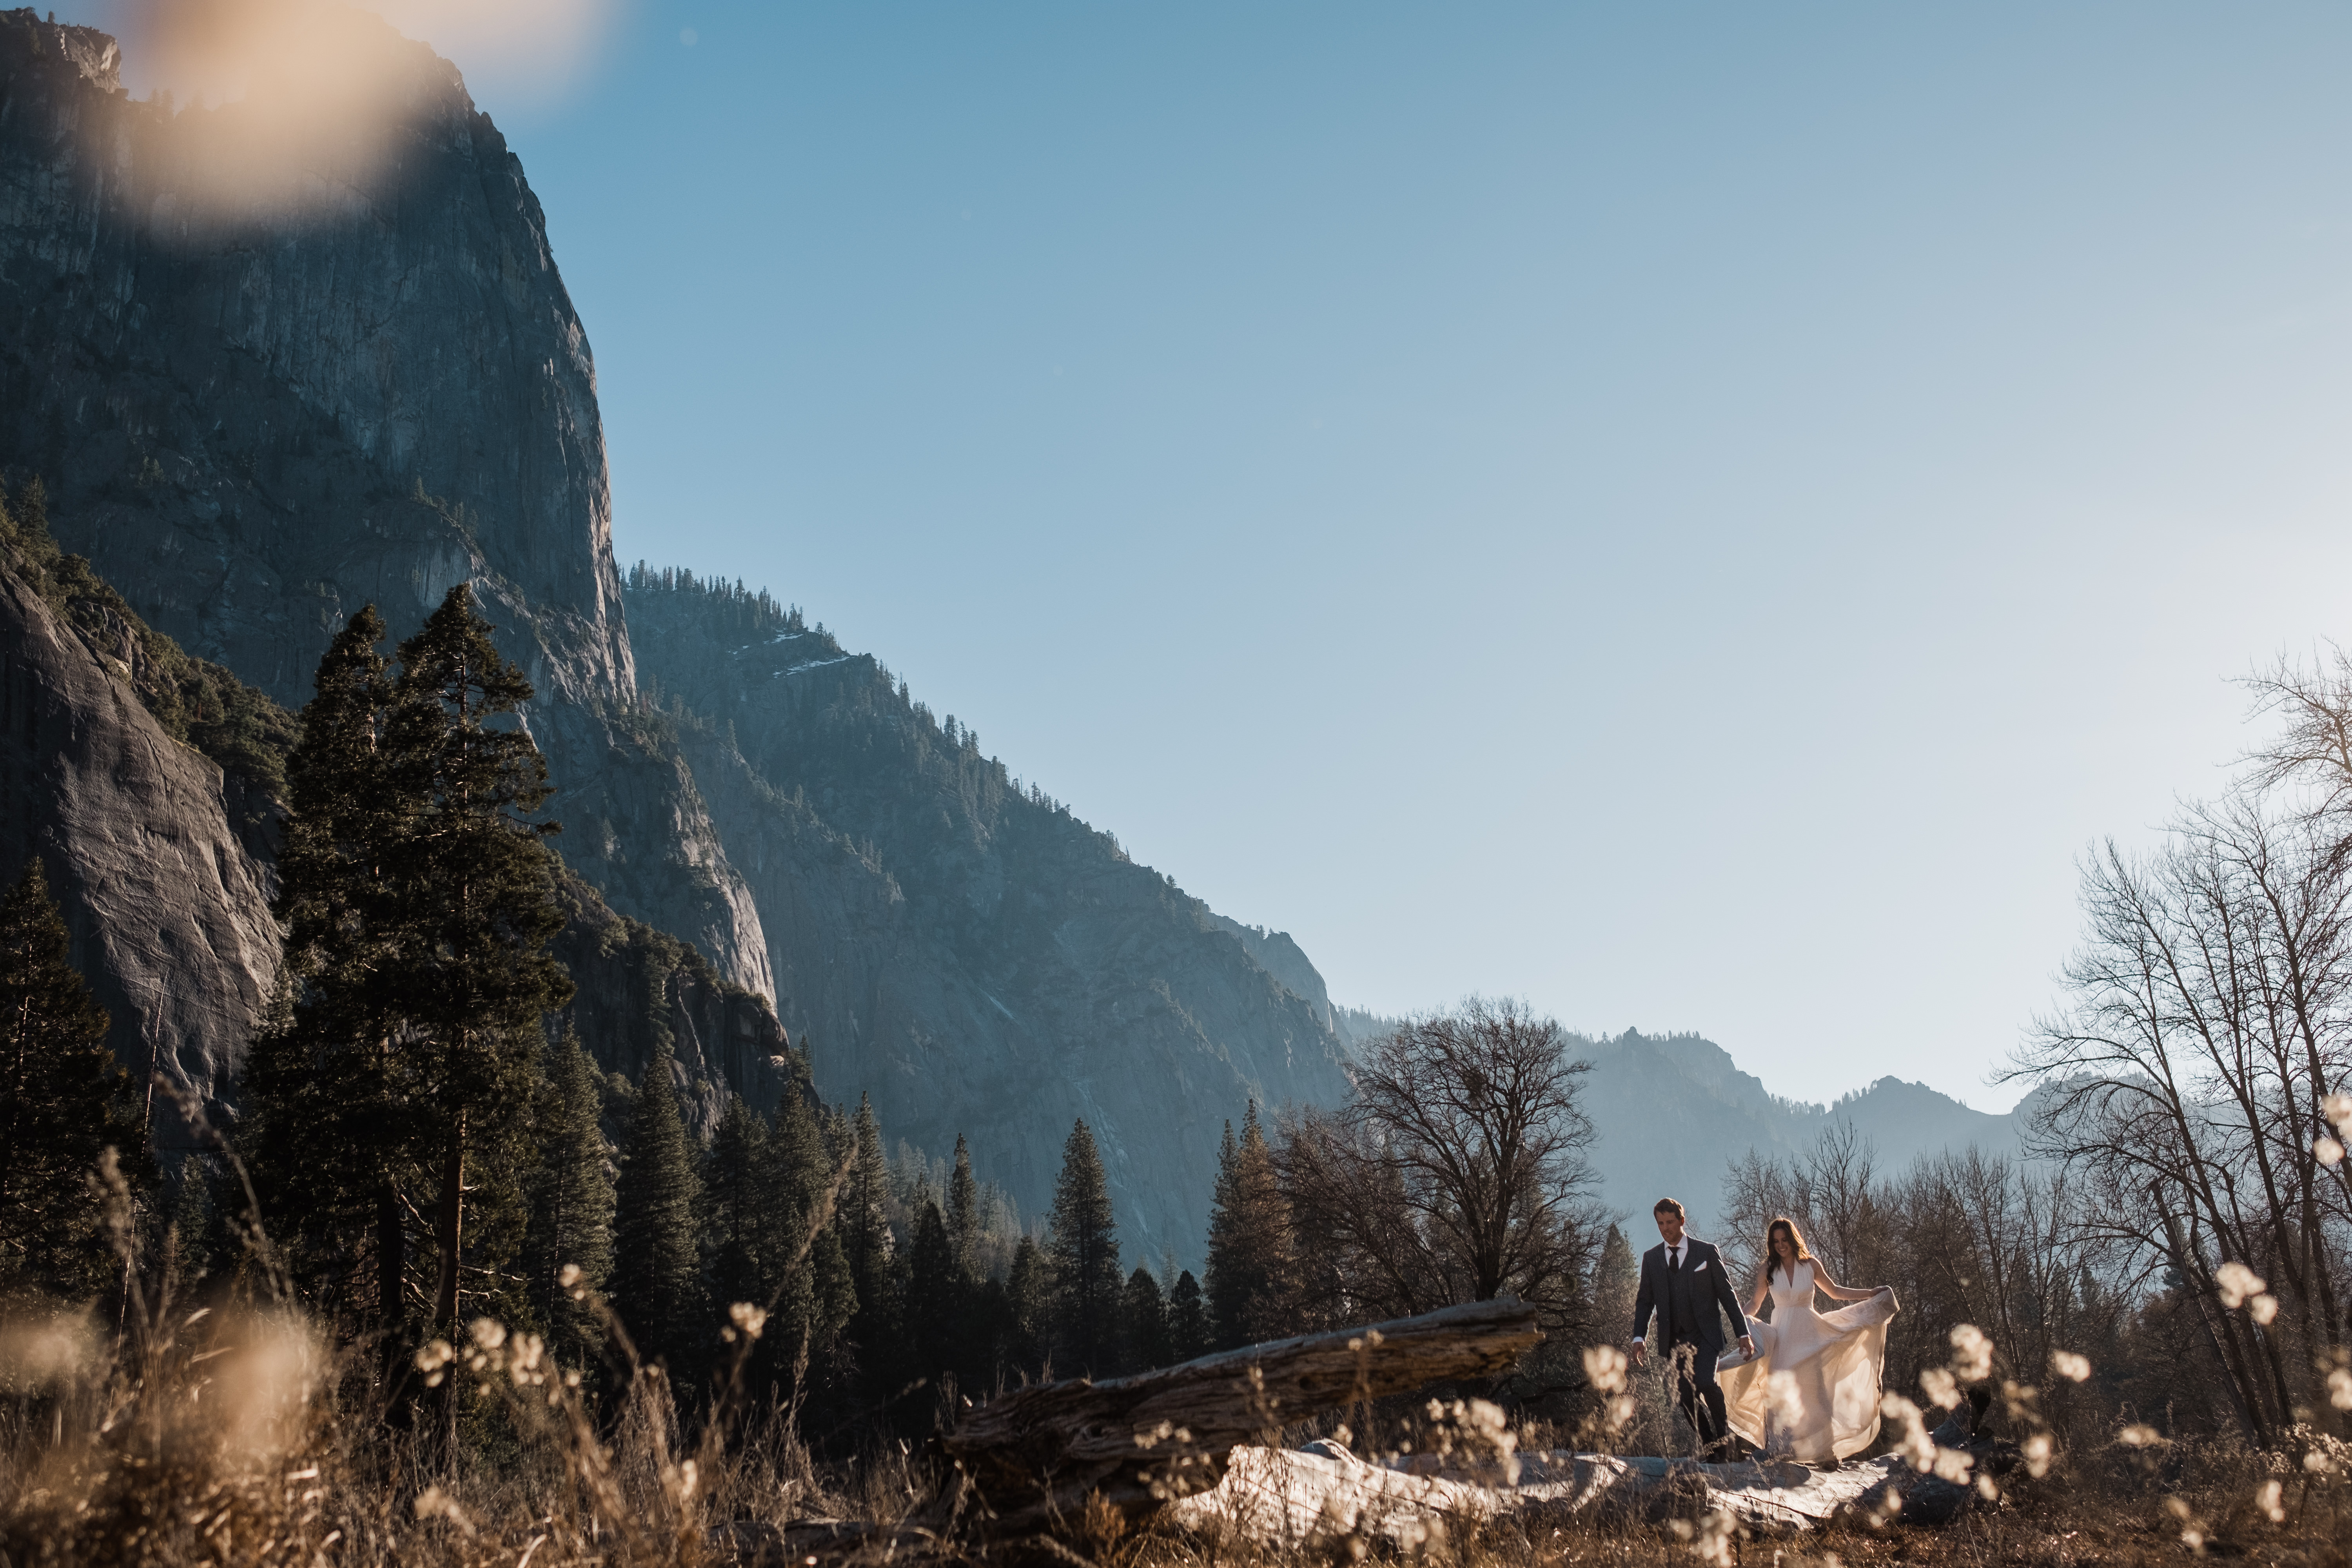 The meadows of the Yosemite Valley come alive in the afternoon golden hour for Ryan and Kim's adventure wedding.